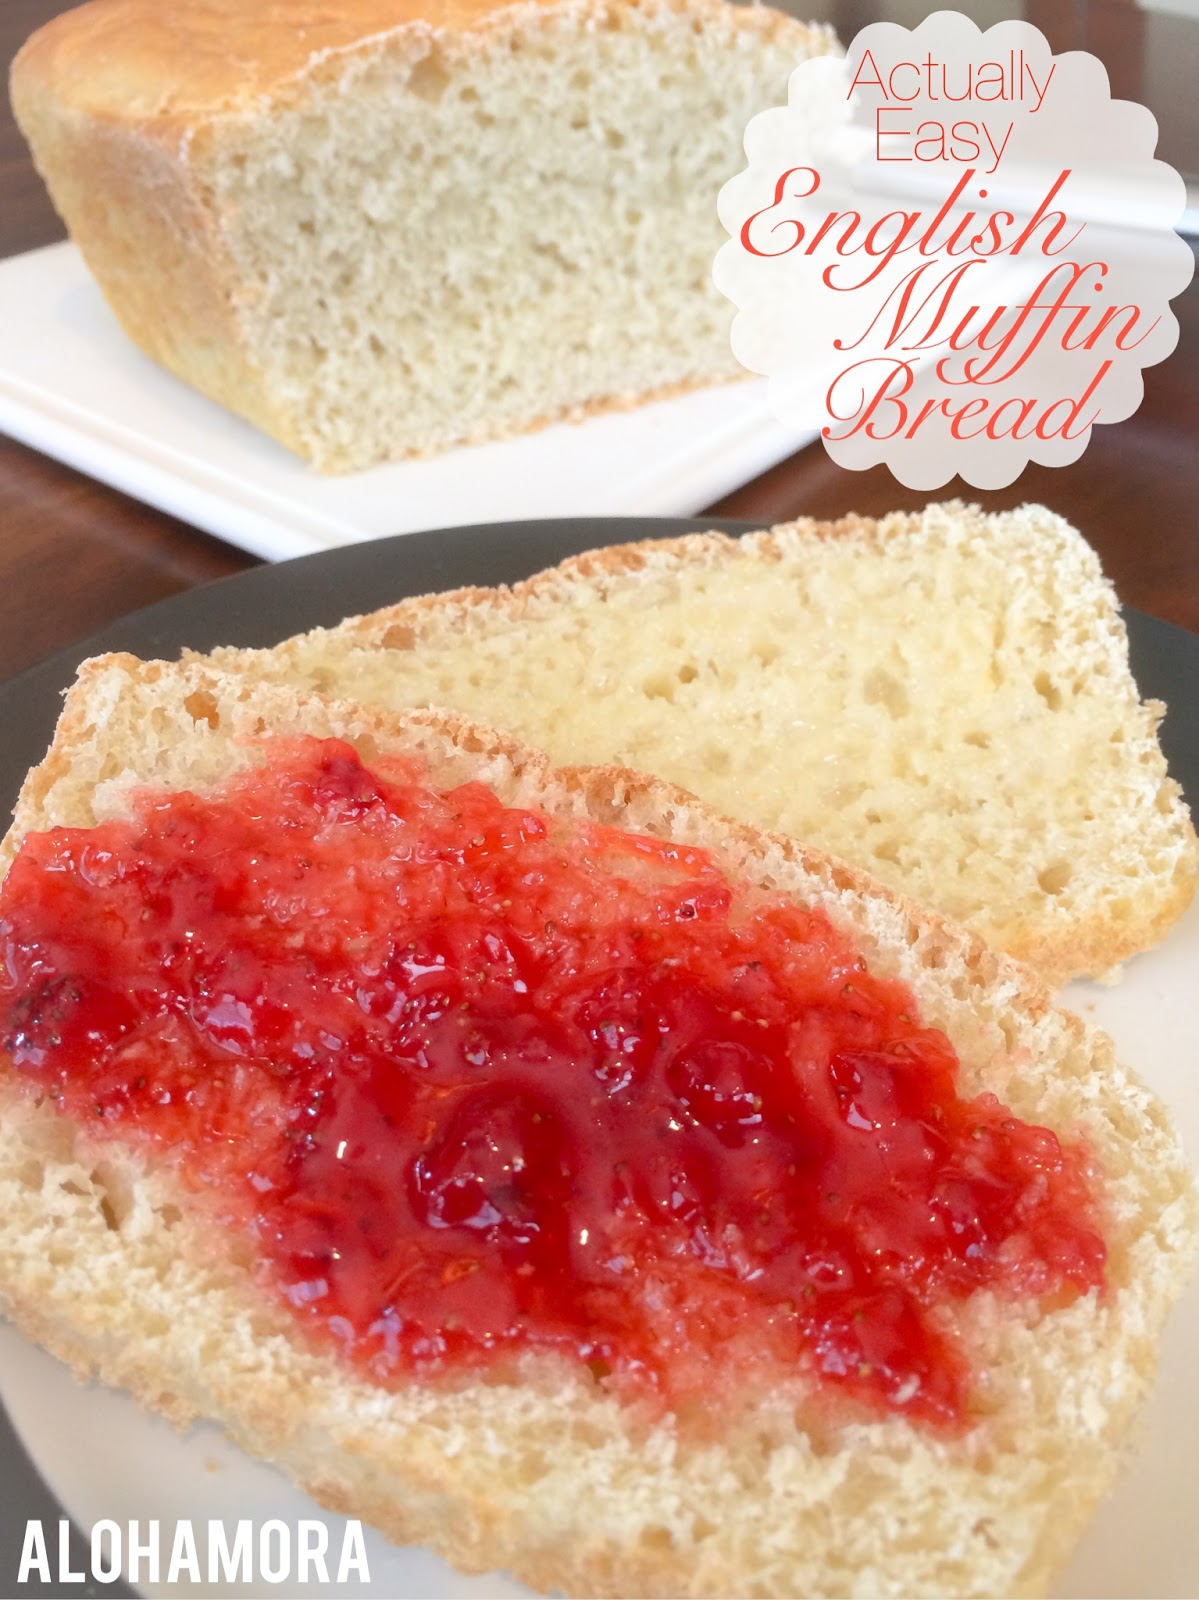 Actually easy and surpringsly simple English Muffin Bread to make from scratch and completely homemade.  This bread is so much cheaper than English Muffins, and it tastes a million times better.  Eat bread and butter just like the Weasleys in Harry Potter.  Alohamora Open a Book http://alohamoraopenabook.blogspot.com/